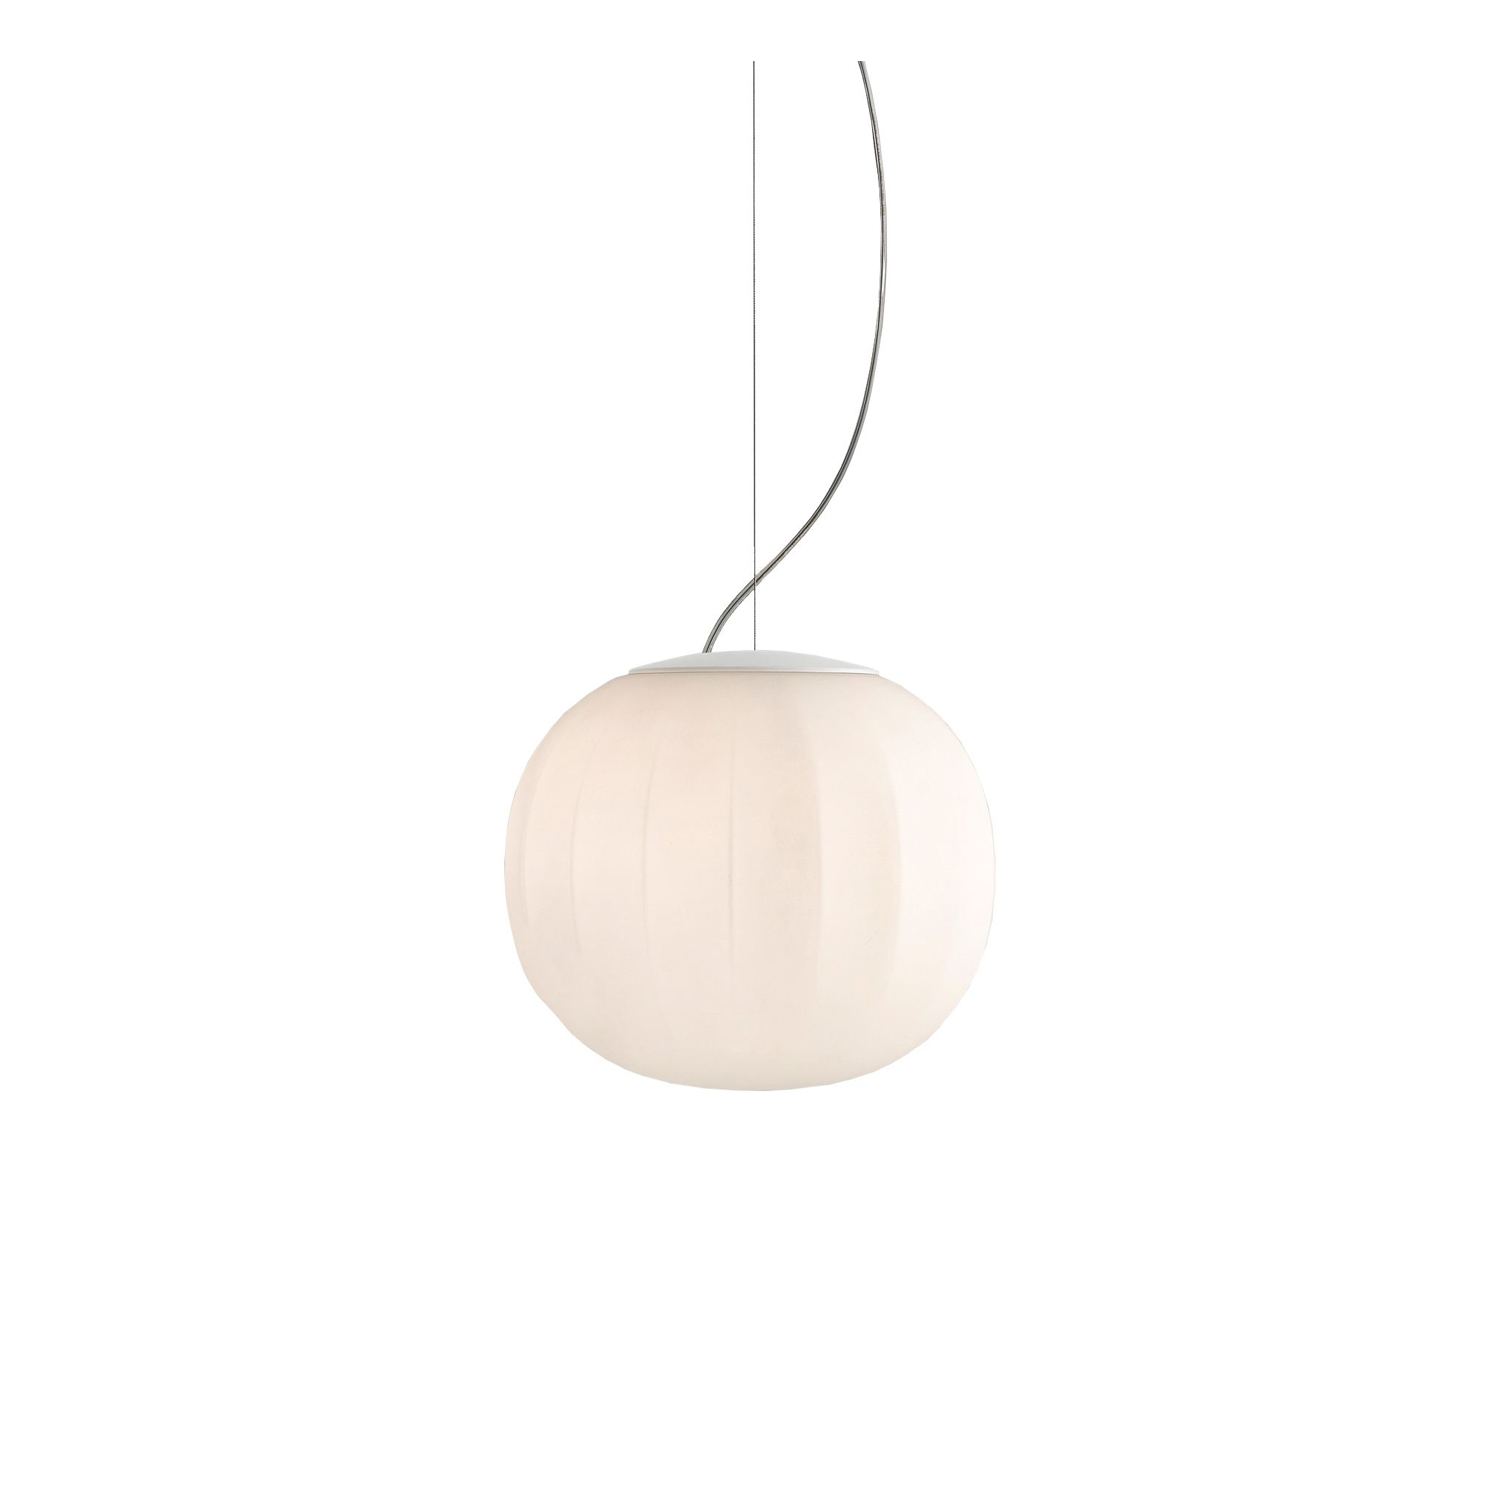 Lita Suspension Lamp -  The diffuser in opaline blown glass – whose surface is scanned by the repetition of slight vertical cusps that vanish at the extremities – is combined with a wooden structure, making Lita a product with a forceful material character. A timeless and evocative object that combines the crafts tradition with technical research, seductive in its way of matching visual and tactile sensations.  Multiple suspension version is available please enquire for more information | Matter of Stuff